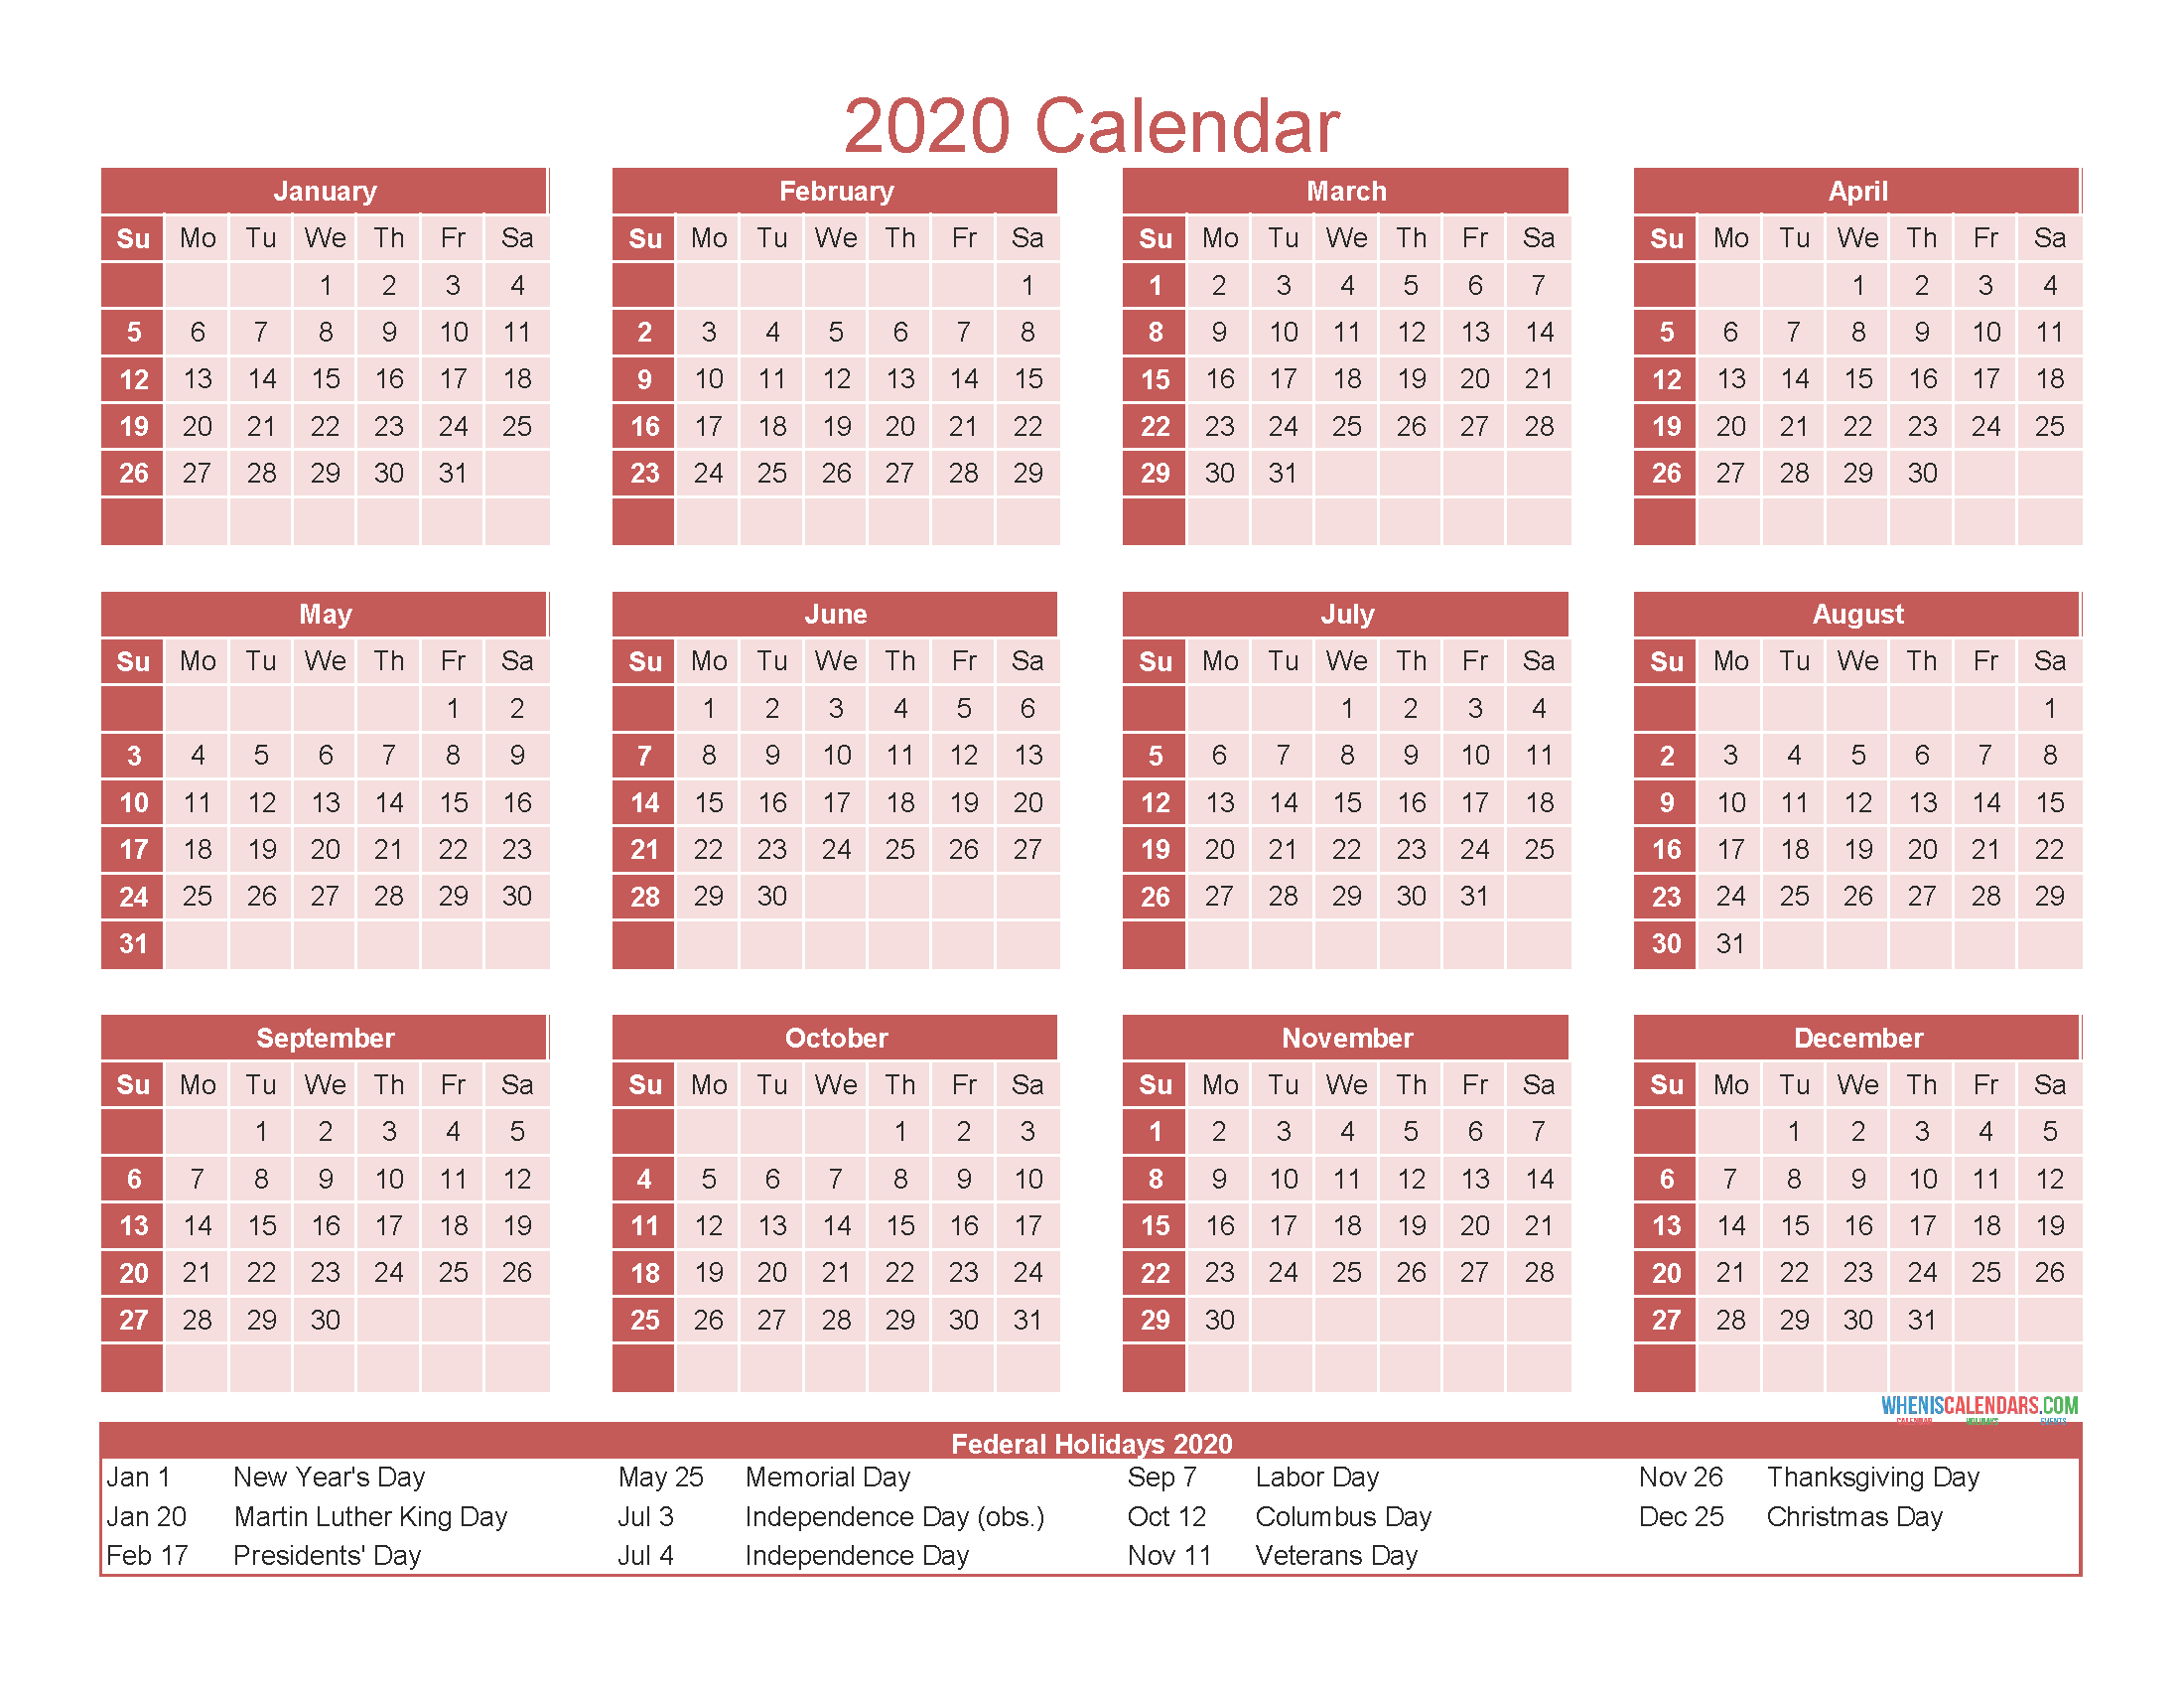 Free Printable 12 Month Calendar 2020 with Holidays